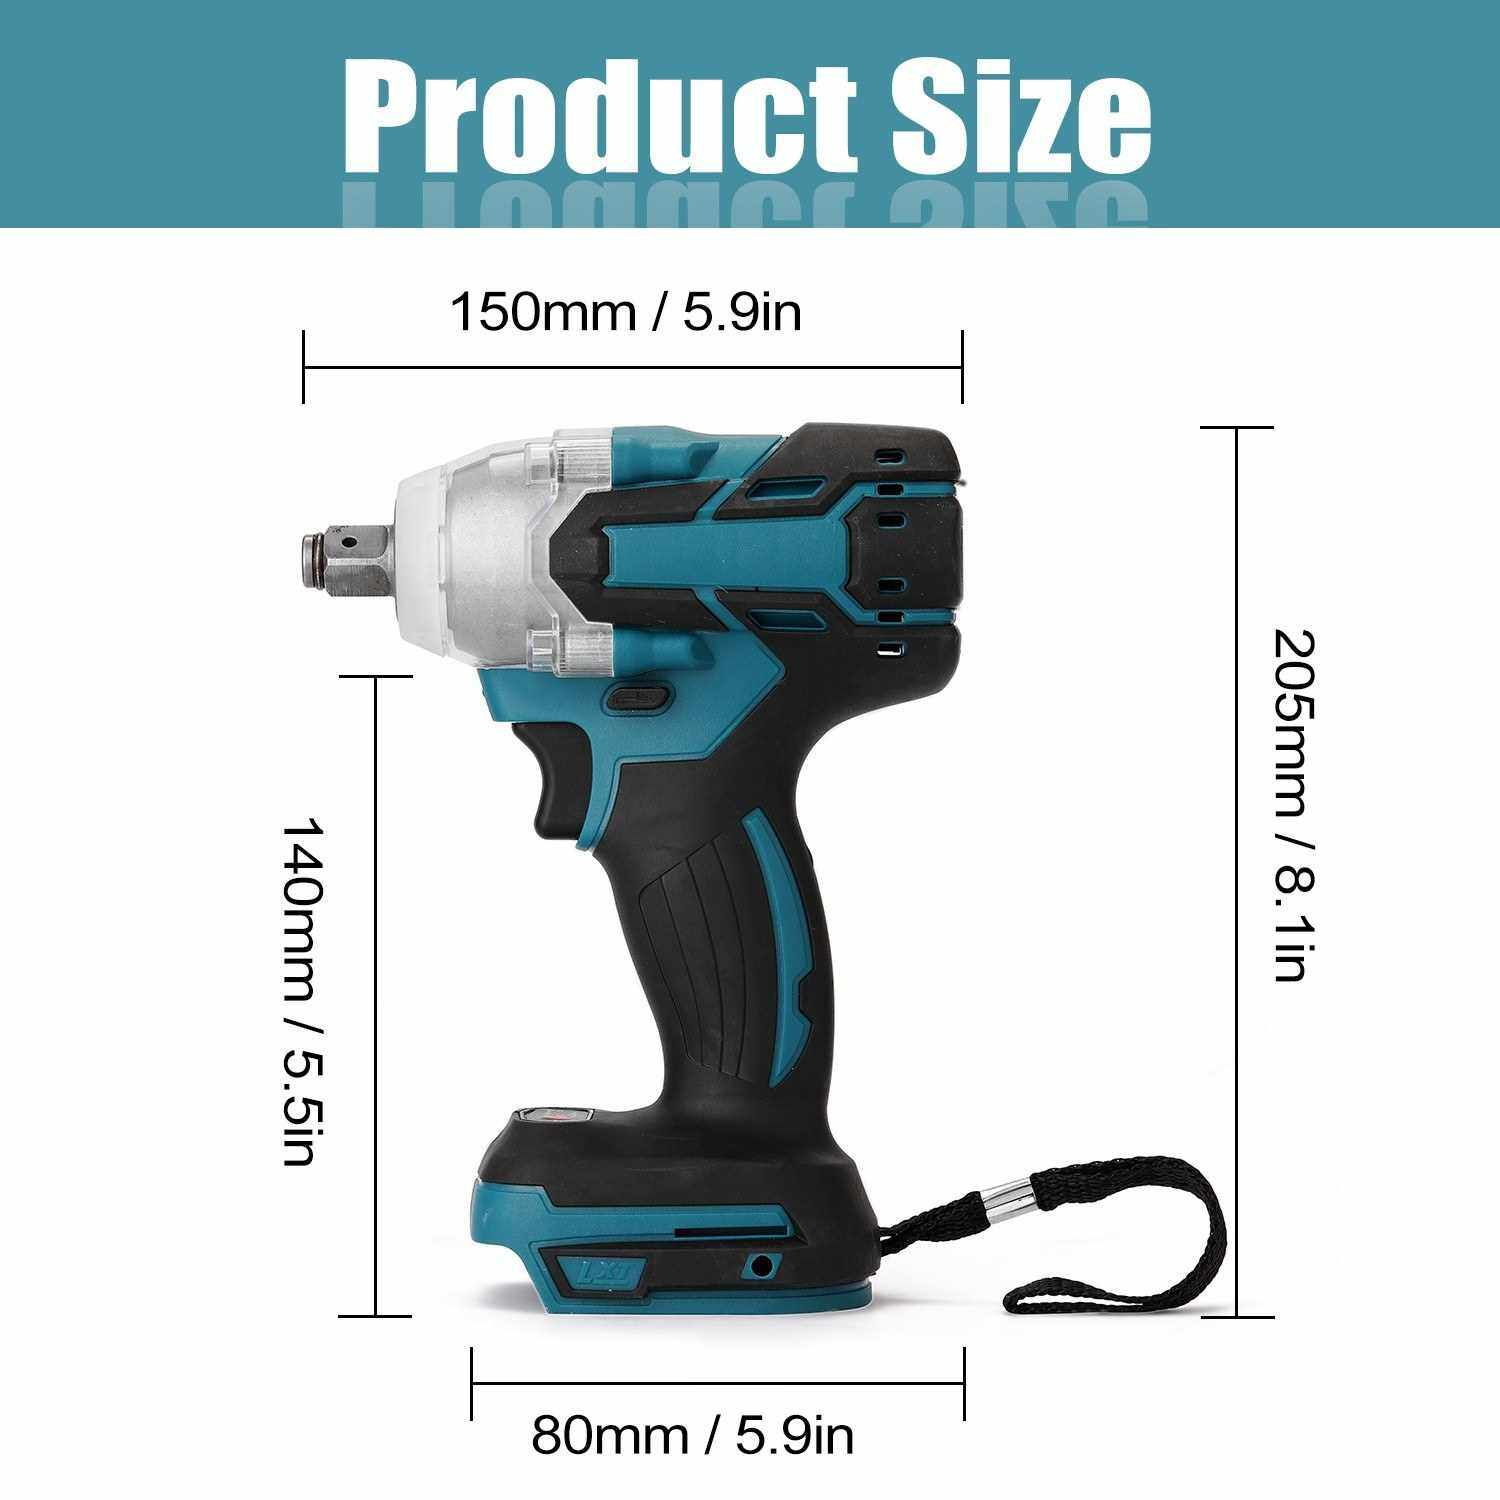 Electric Rechargeable Cordless Brushless Impact Screwdriver Multifunctional Wireless Electric Hand Screwdriver Home DIY Electric Power Tools (Standard)